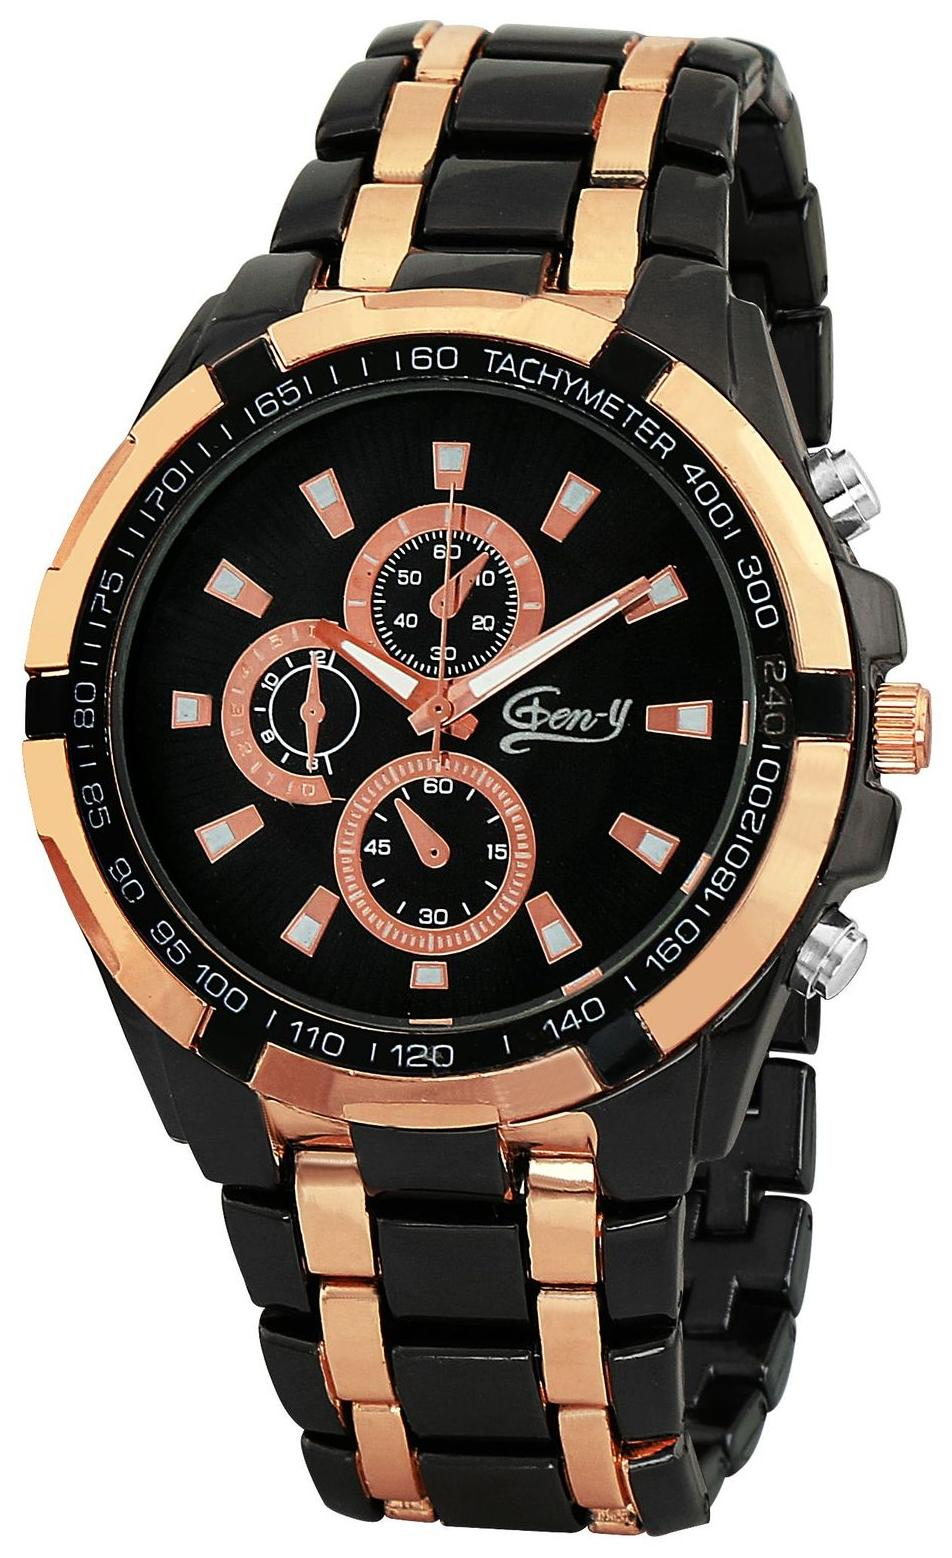 Gen Y GY 037 Black and Golden Analog Watch   For Boys and Men by Watches Mart